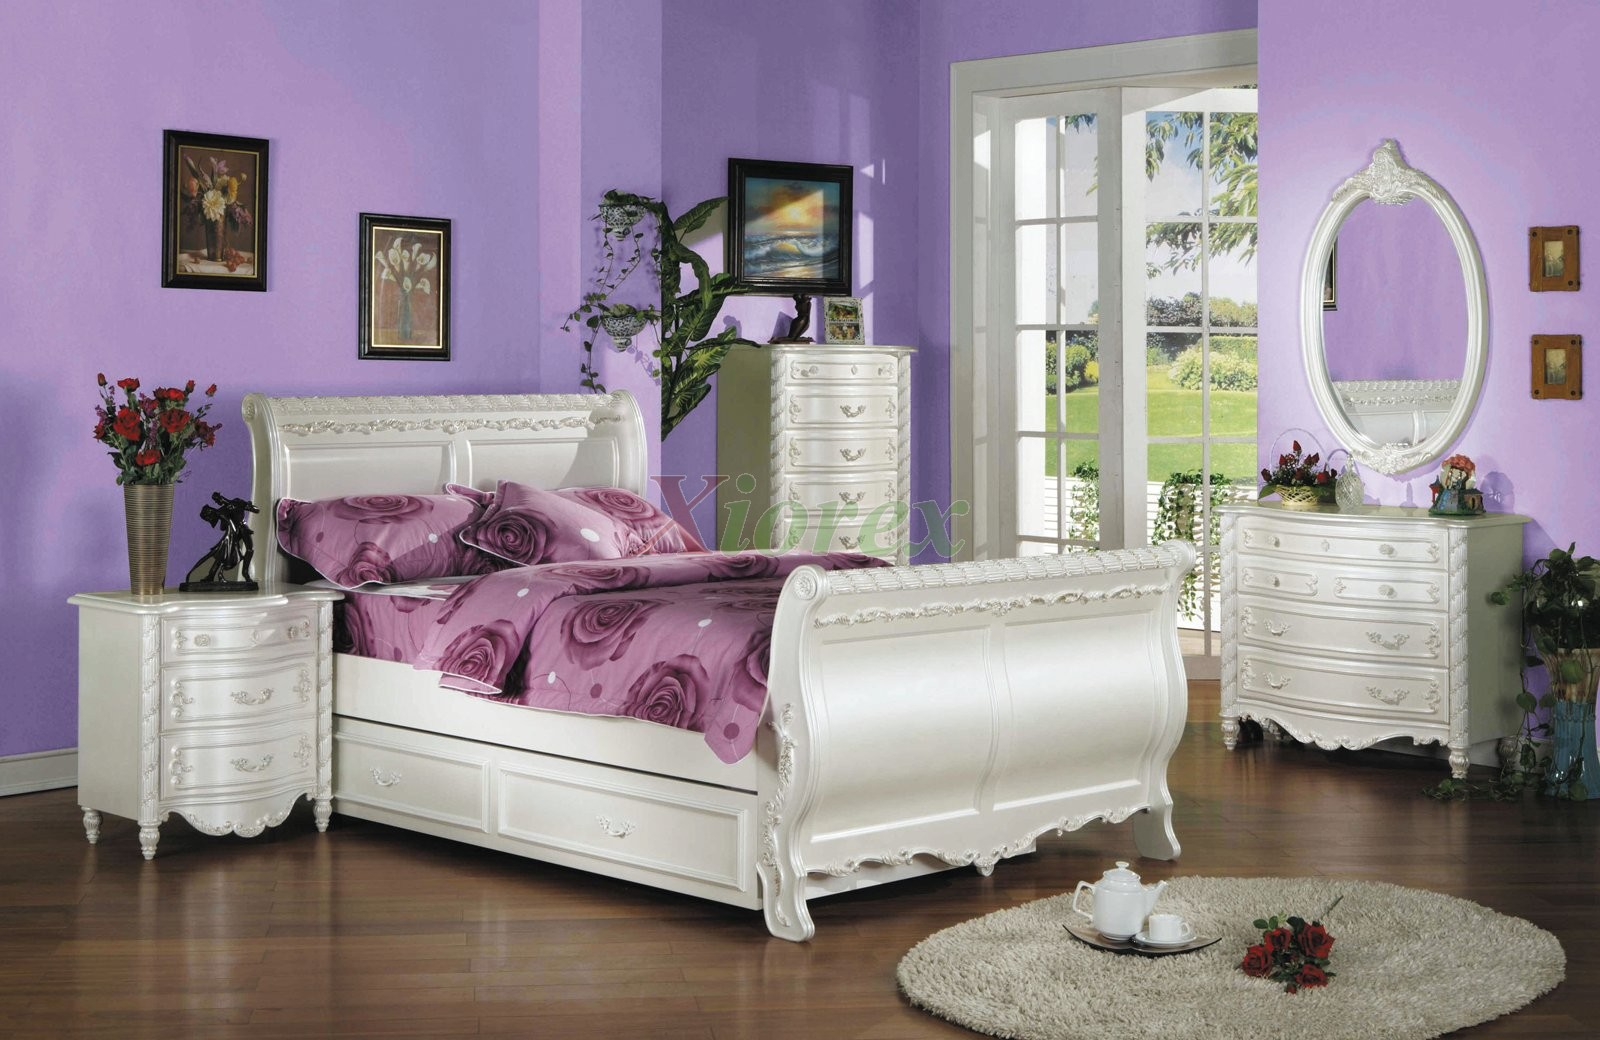 home design martha girls bedroom furniture sets. Black Bedroom Furniture Sets. Home Design Ideas